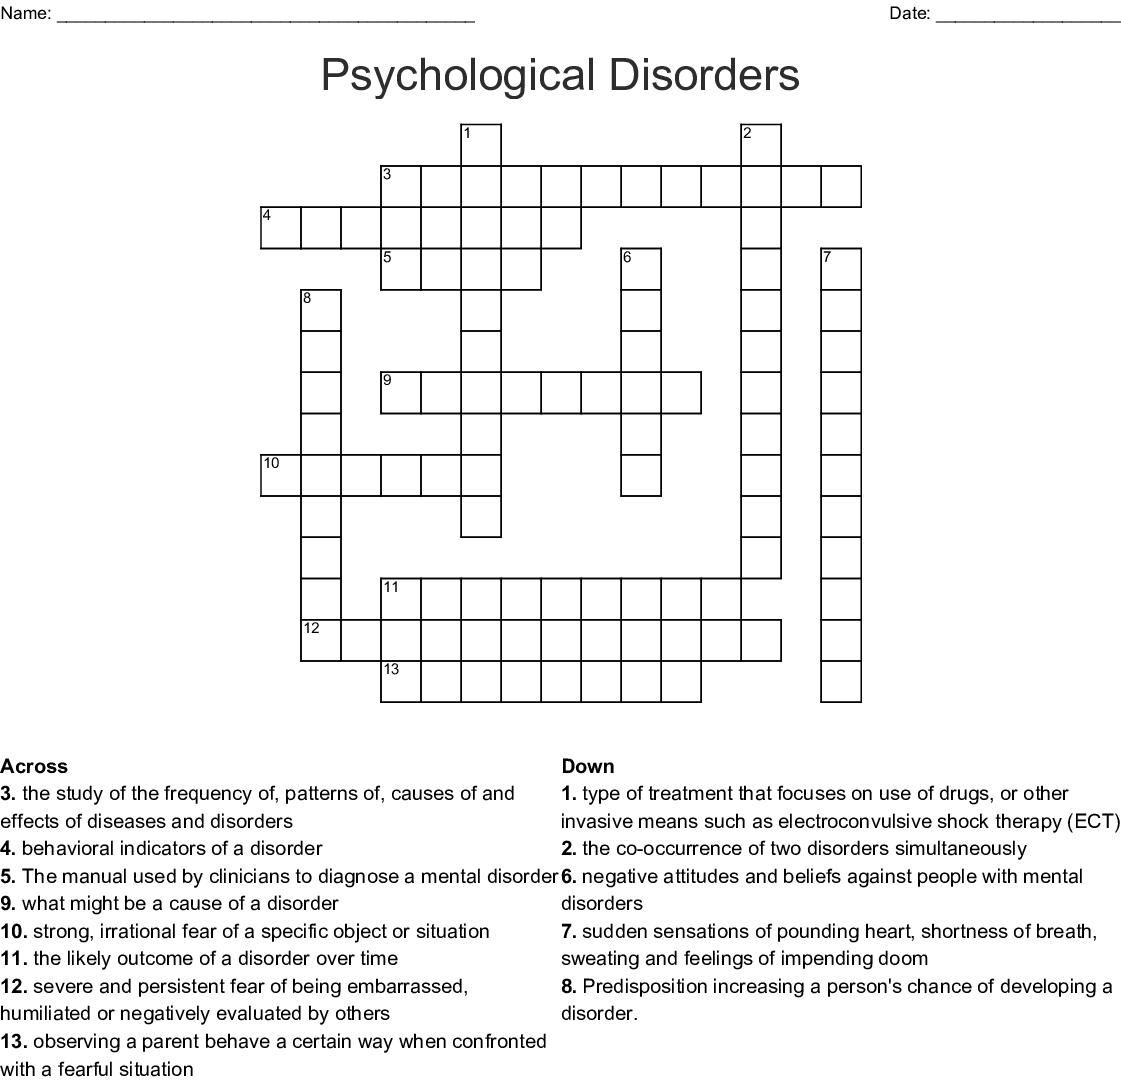 Psychological Disorders Crossword Wordmint